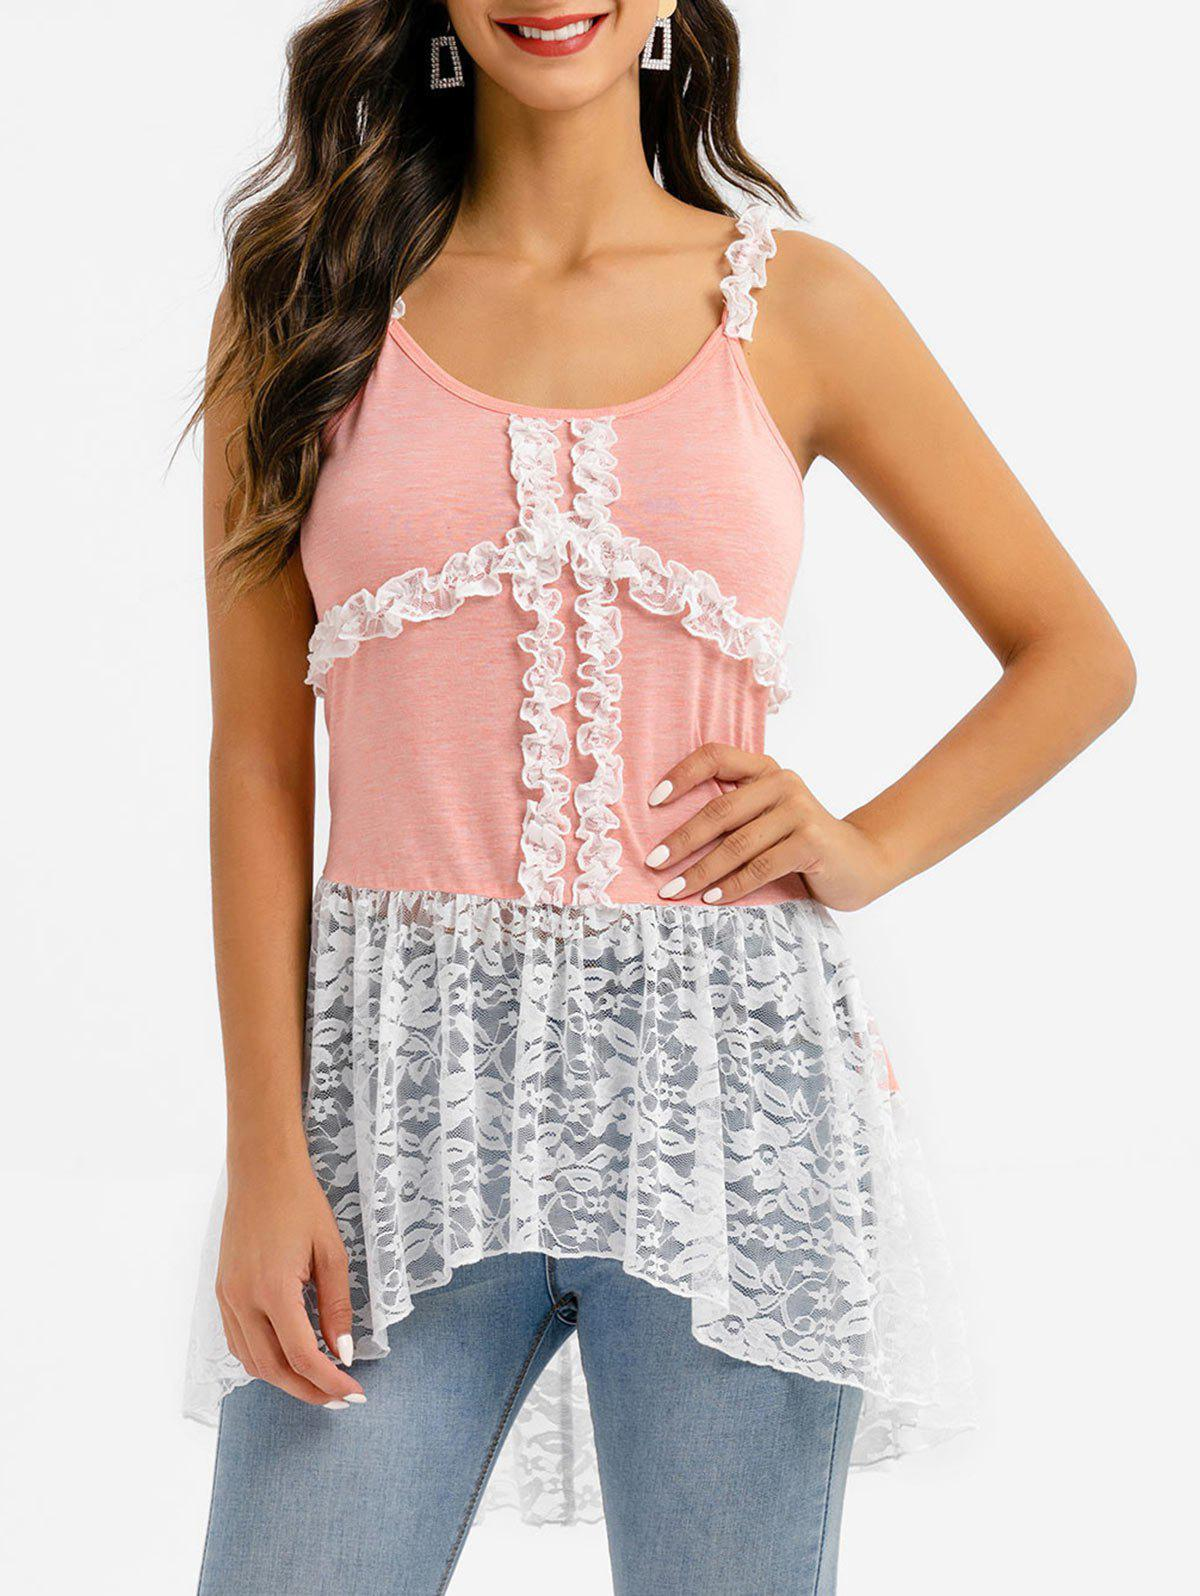 Frilled Lace Insert Dip Hem Tank Top - multicolor A 3XL